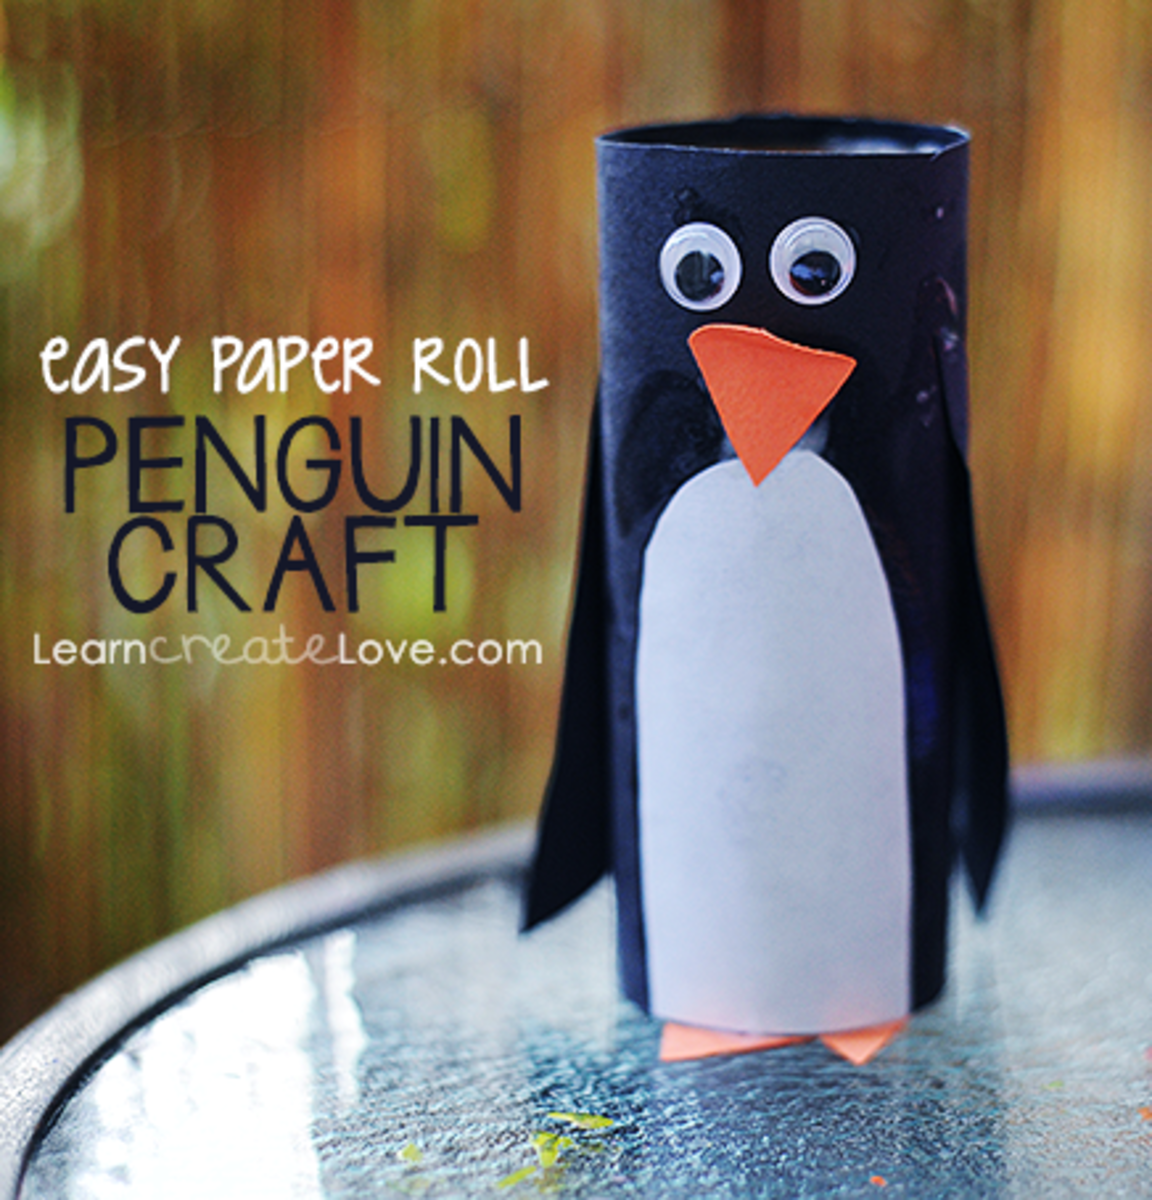 Make a Penguin craft using a craft cardboard roll and some paper...add googly eyes